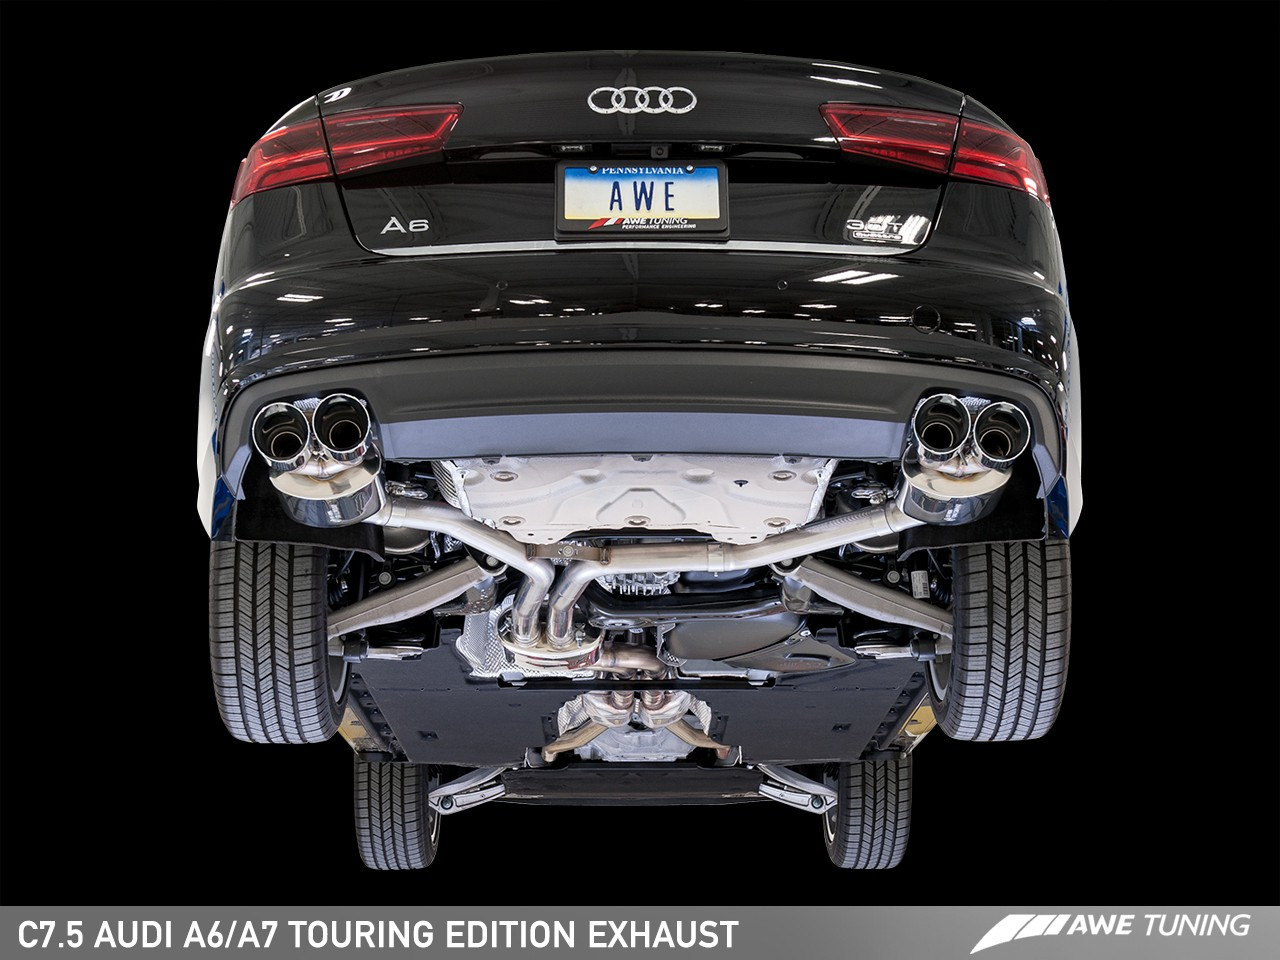 Awe Tuning 2016 C7 5 Audi A6 A7 Exhaust Suite Now